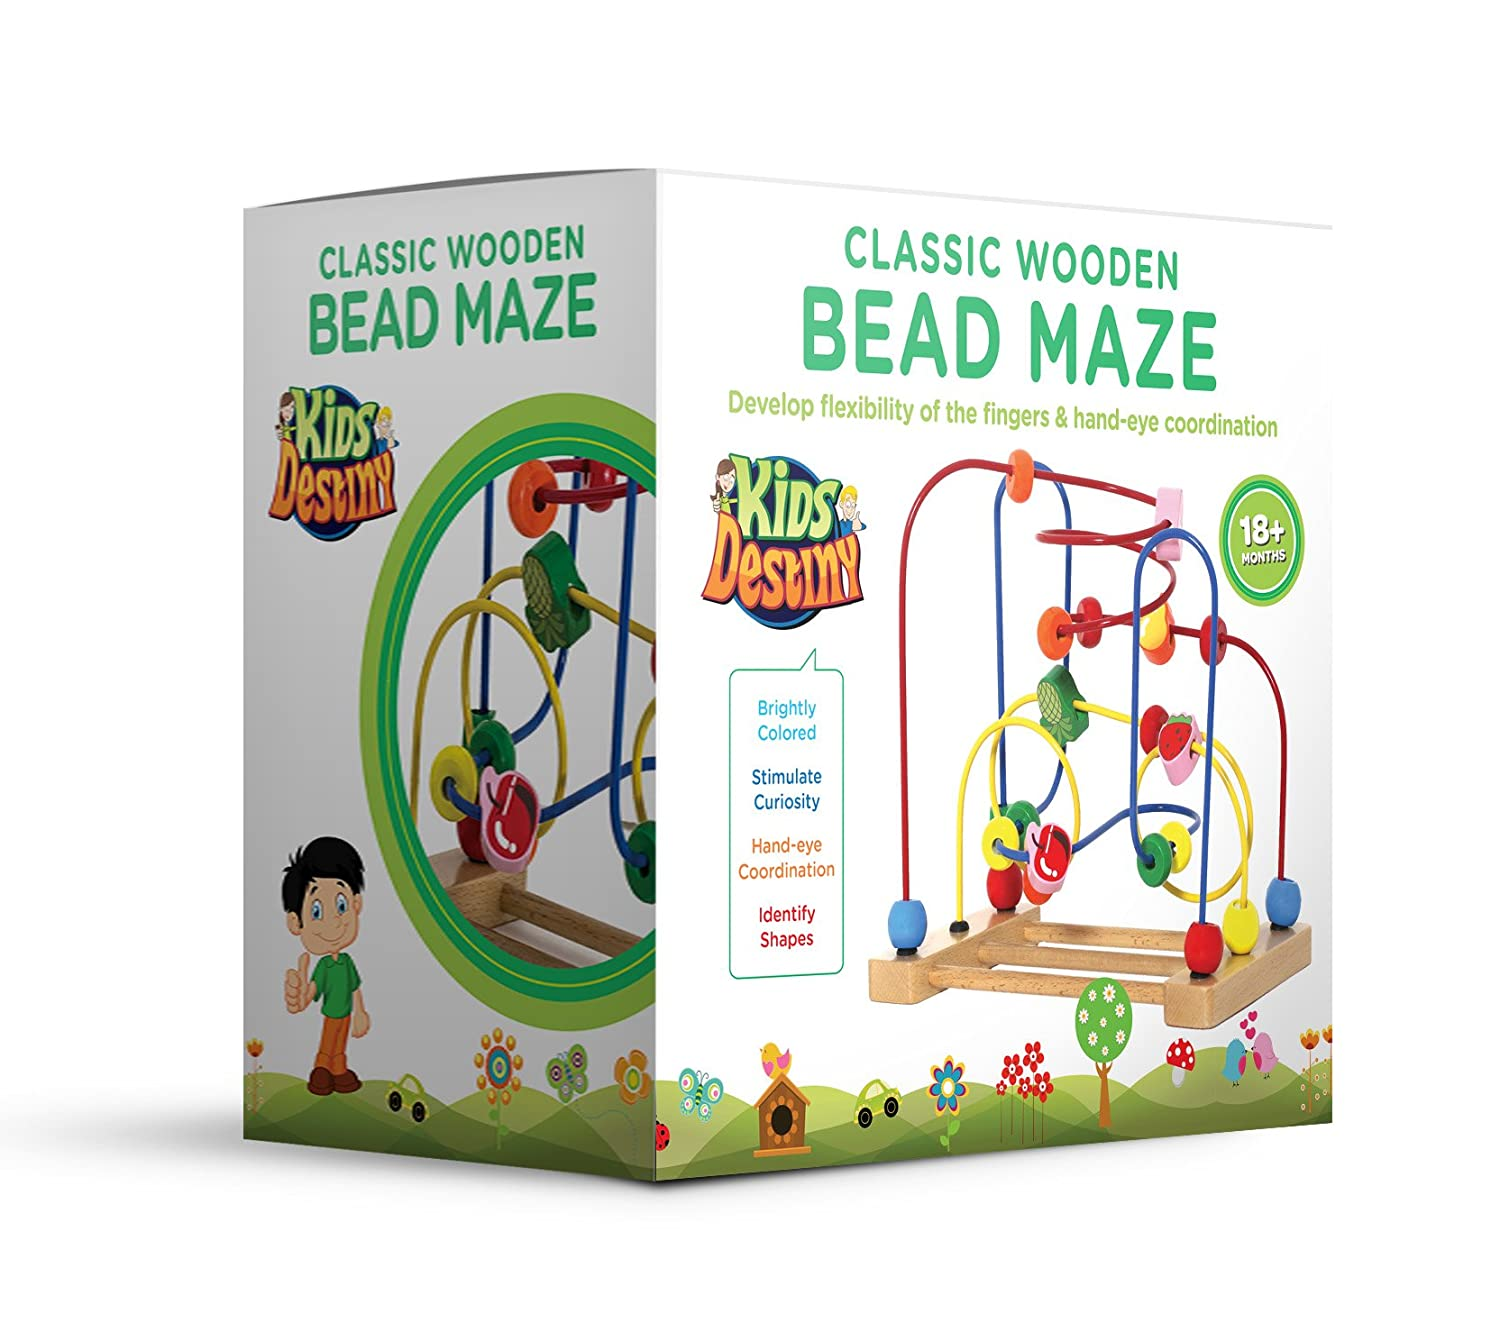 Amazon Kids Destiny Classic Bead Maze Wooden Toys for Kids